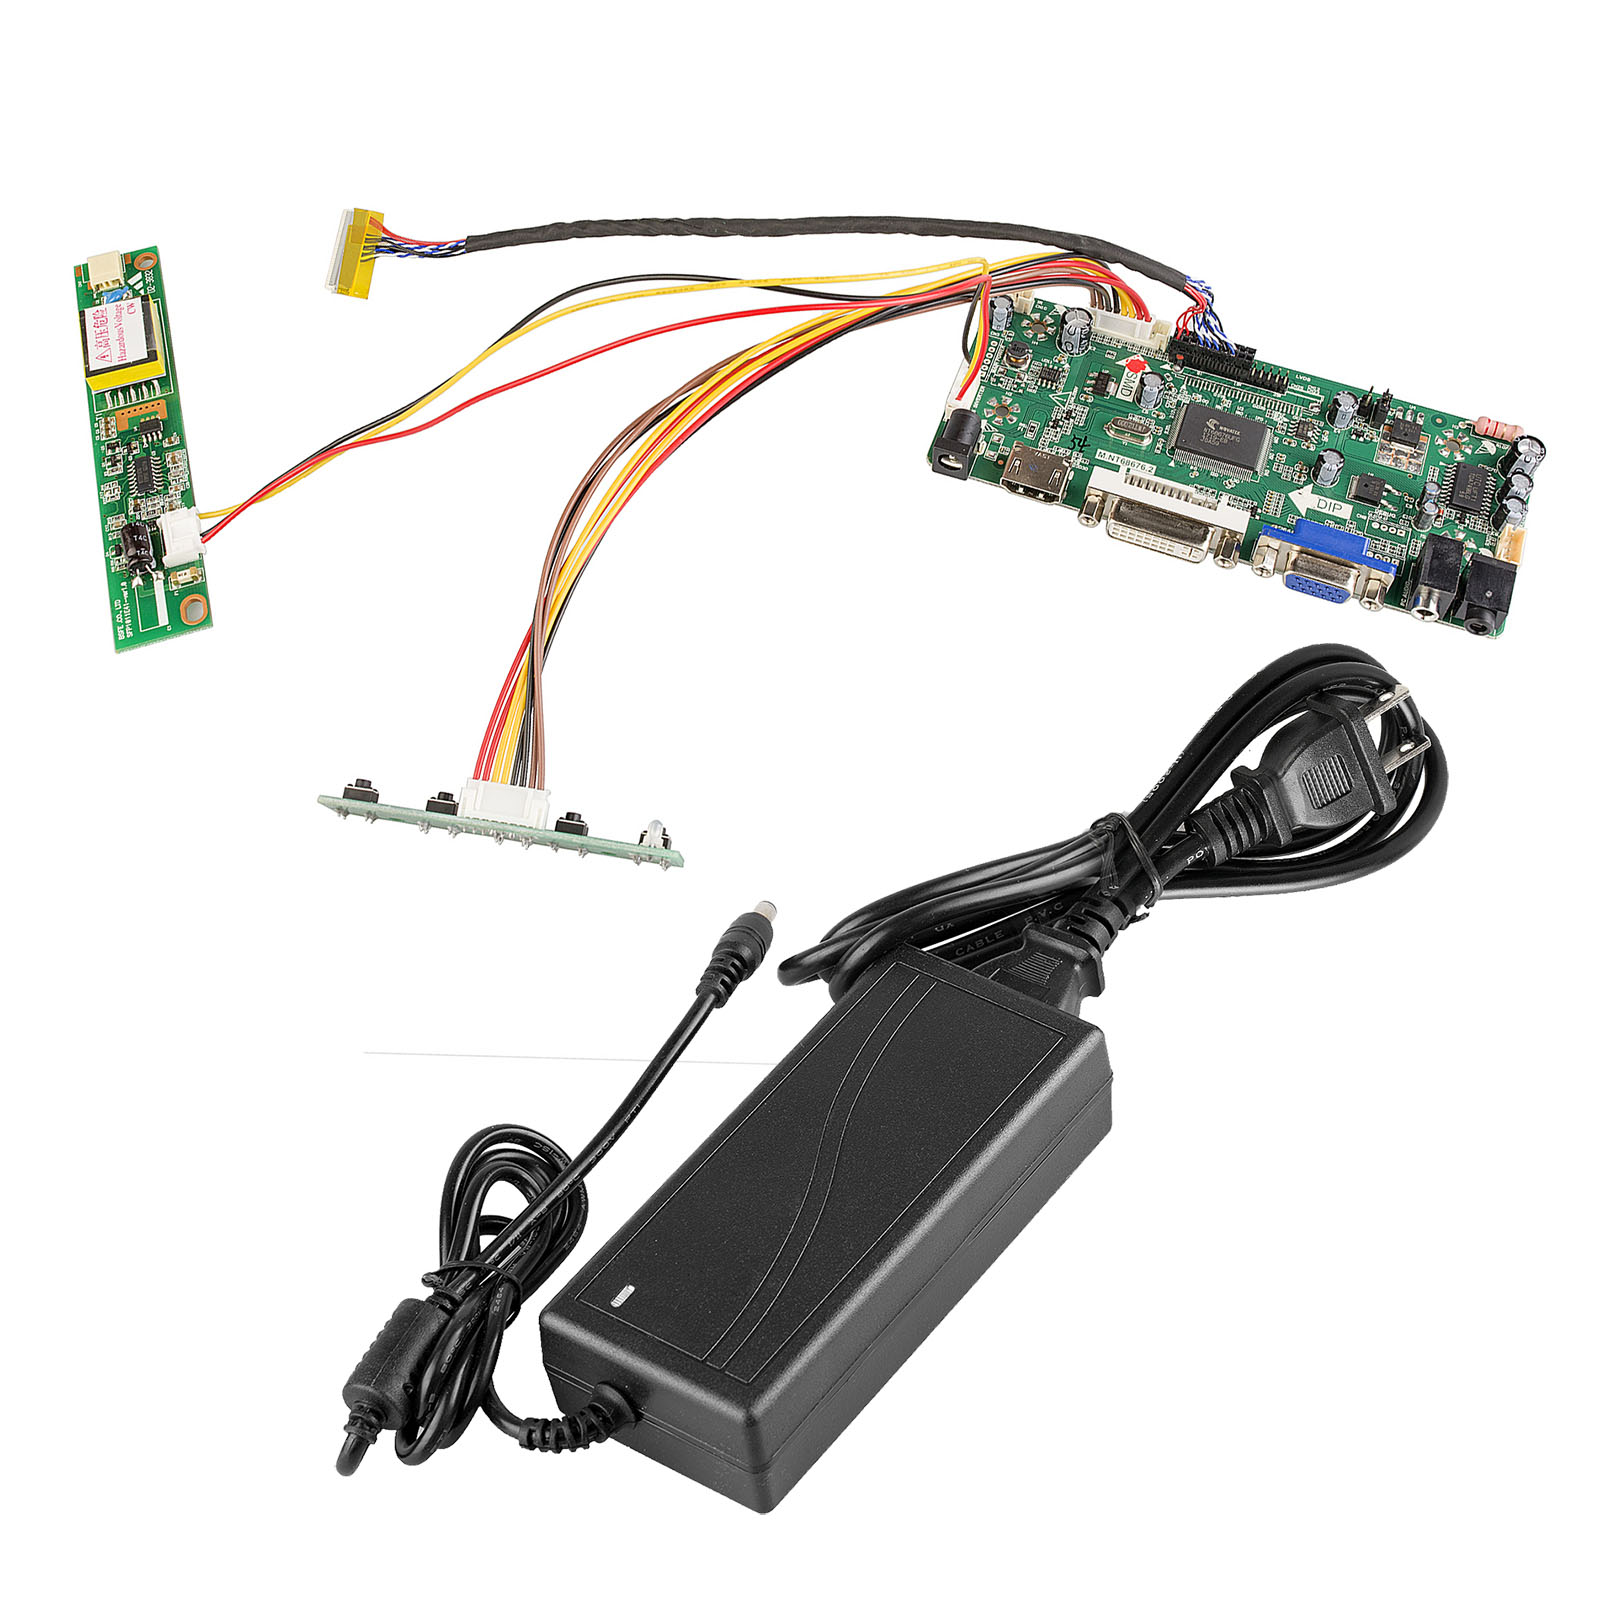 Mnt686762a Hdmi Vga Dvi Audio Lcd Panel Controller Board 12v3a Replacement 12volt Dc Power Plug Optronics Accessories And Parts A Adapter